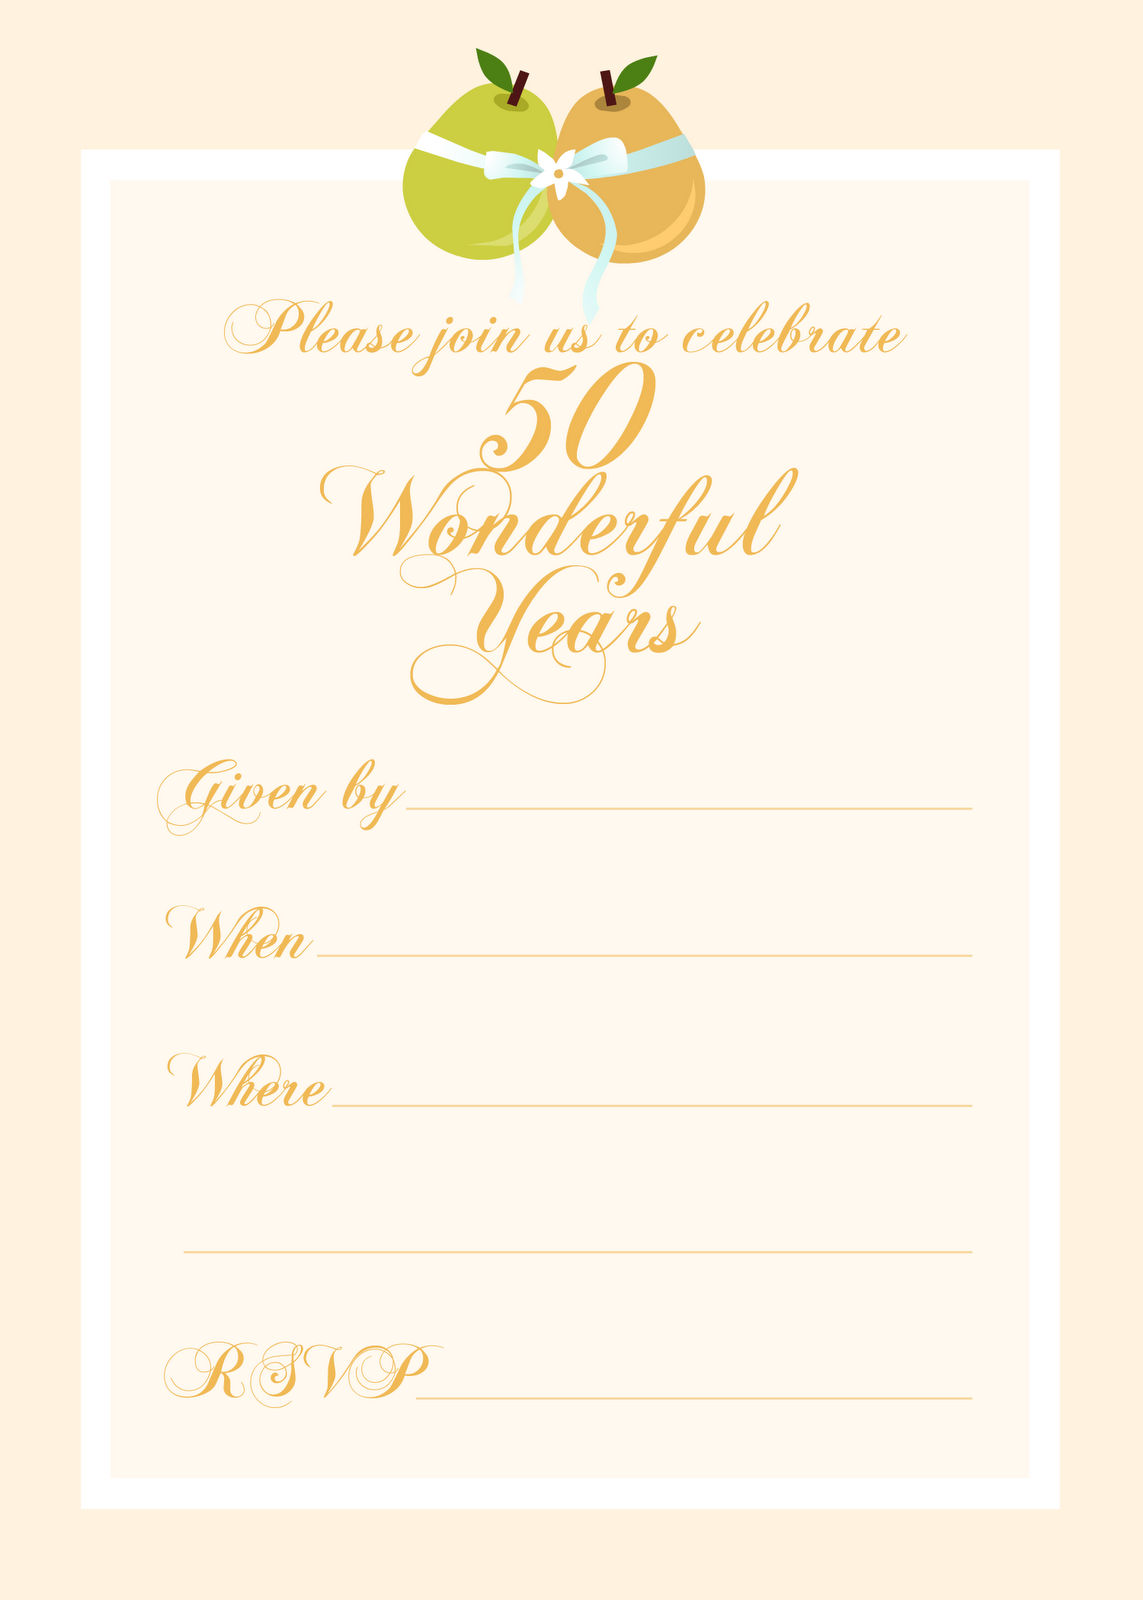 Free printable party invitations free 50th wedding anniversary invitation template - Wedding anniversary invitations ...